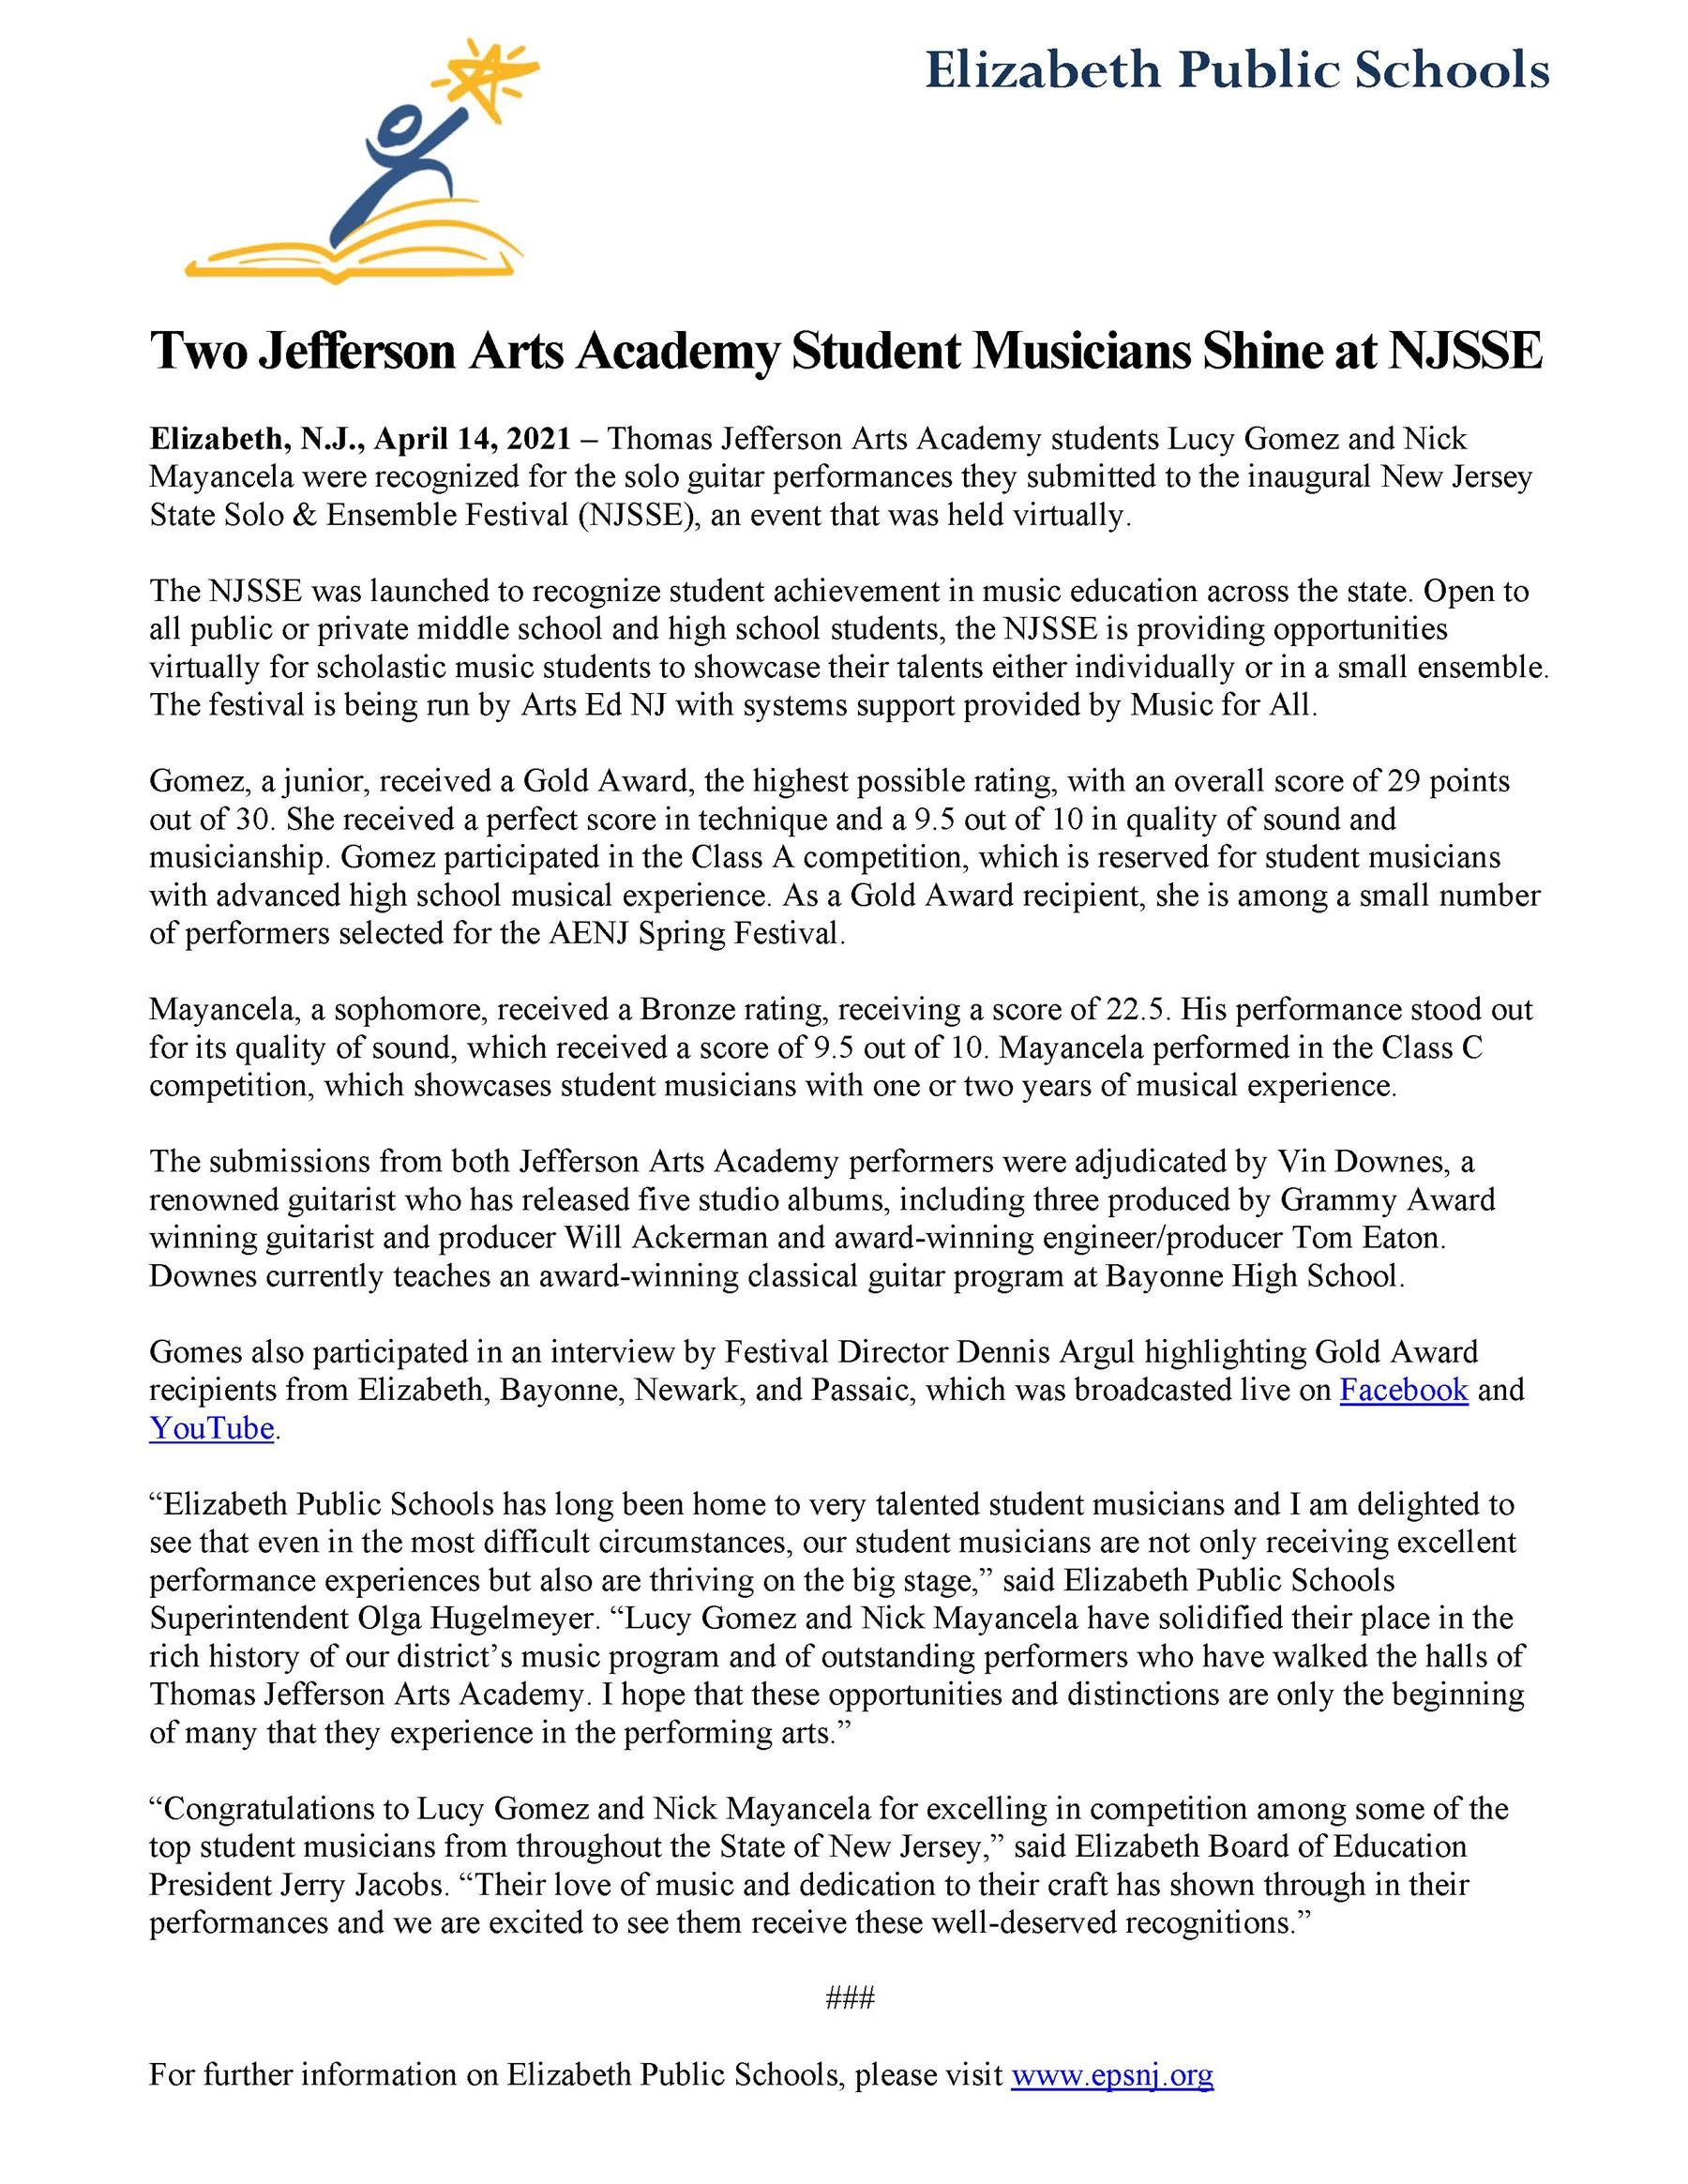 Two Jefferson Arts Academy Student Musicians Shine at NJSSE